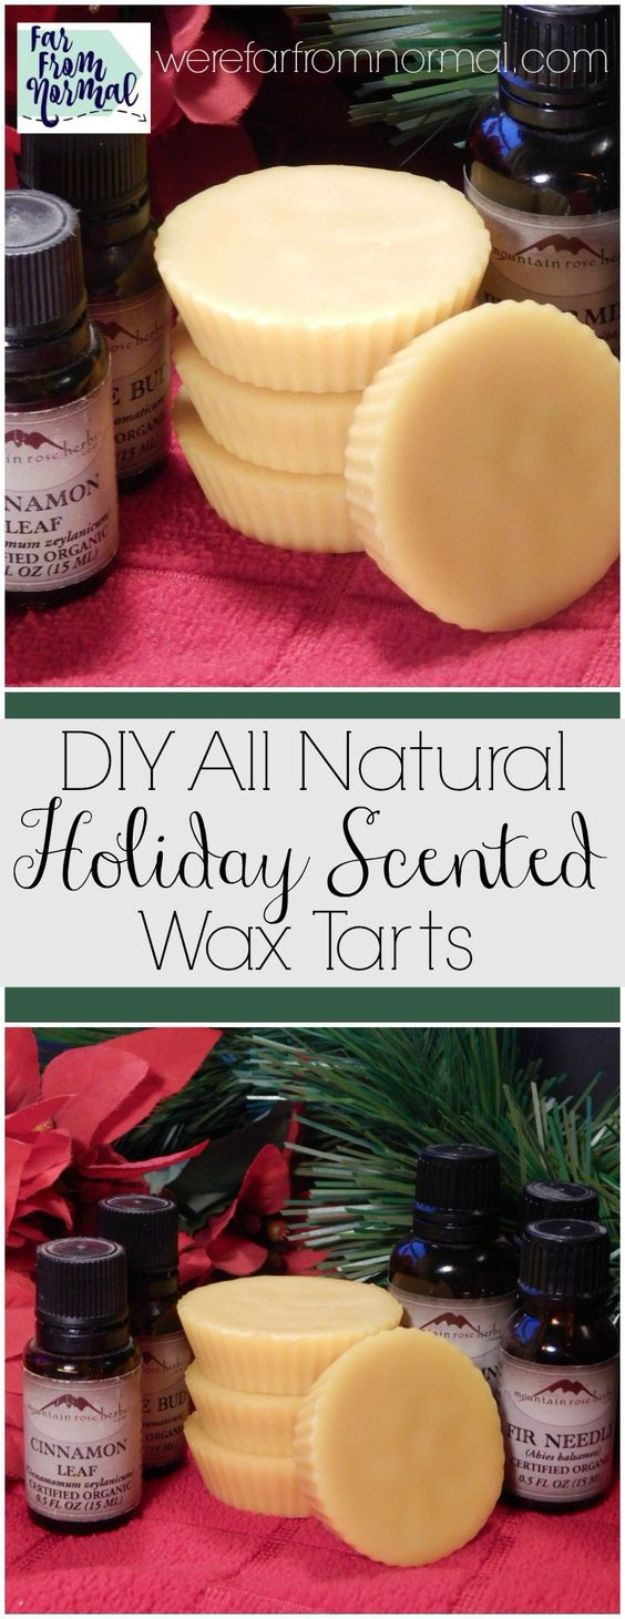 DIY Home Fragrance Ideas - All Natural Christmas Scented Wax Tarts - Easy Ways To Make your House and Home Smell Good - Essential Oils, Diffusers, DIY Lampe Berger Oil, Candles, Room Scents and Homemade Recipes for Odor Removal - Relaxing Lavender, Fresh Clean Smells, Lemon, Herb http://diyjoy.com/diy-home-fragrance-ideas